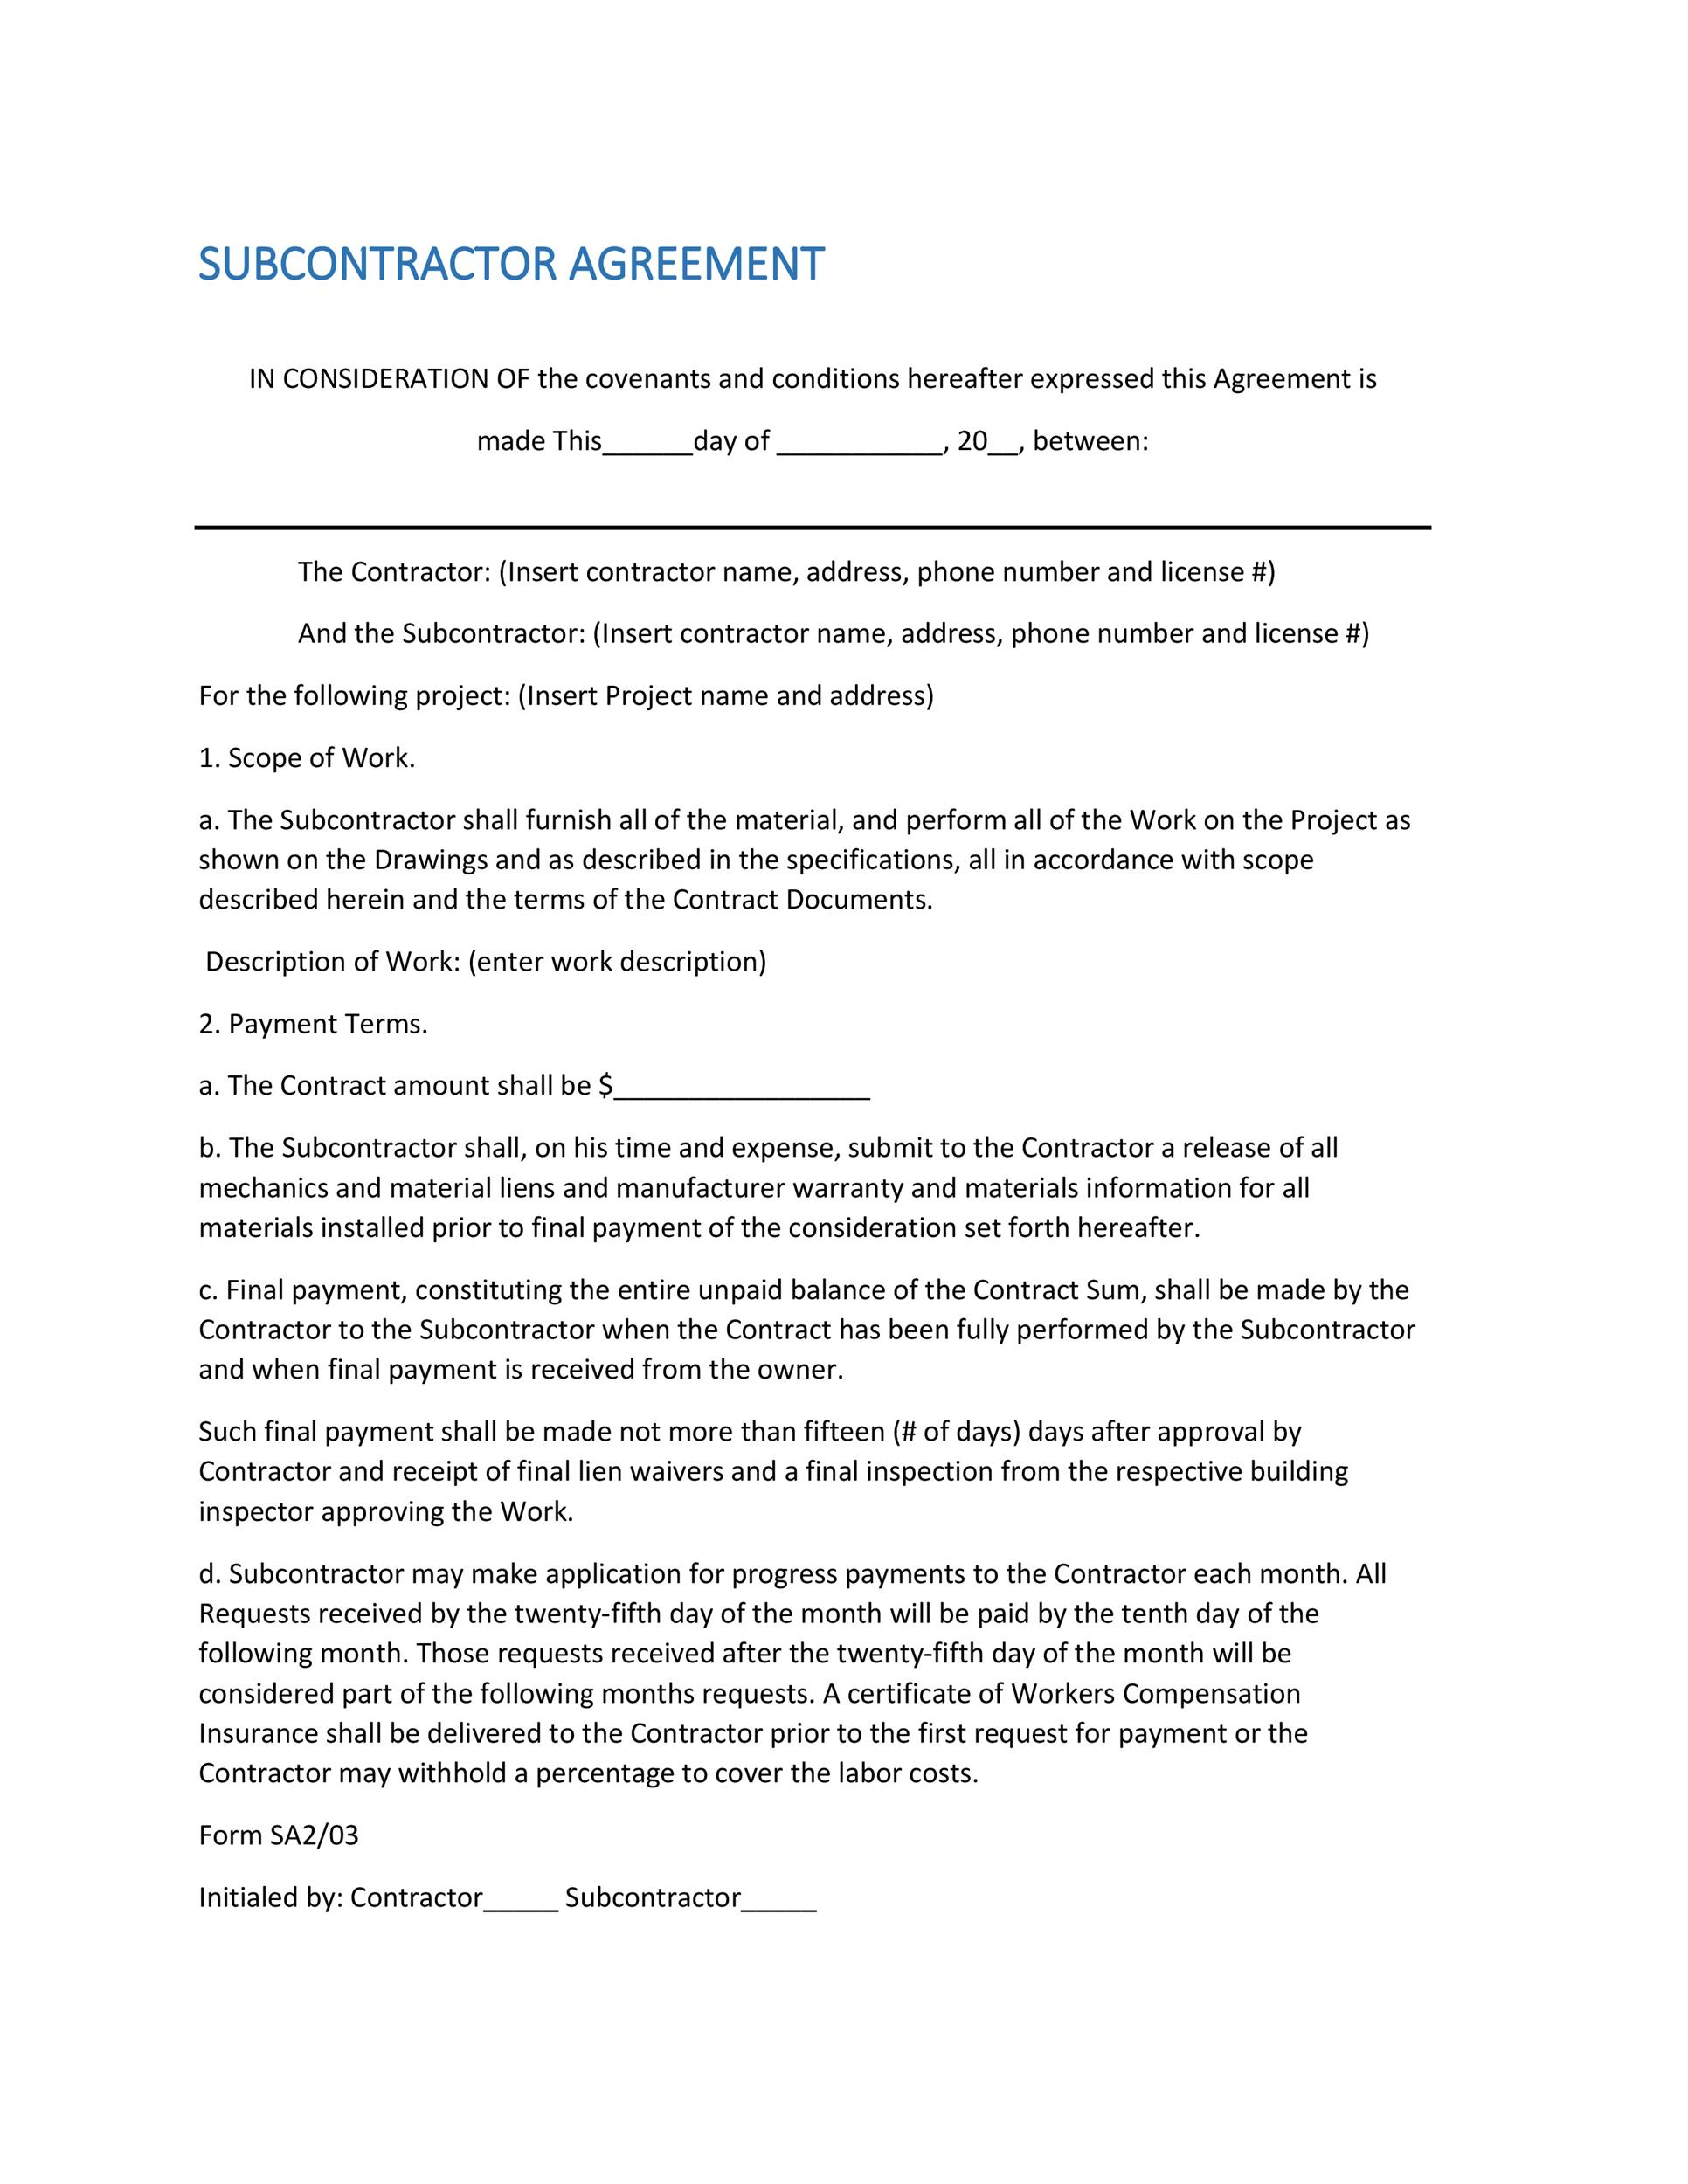 Free Subcontractor Agreement 12